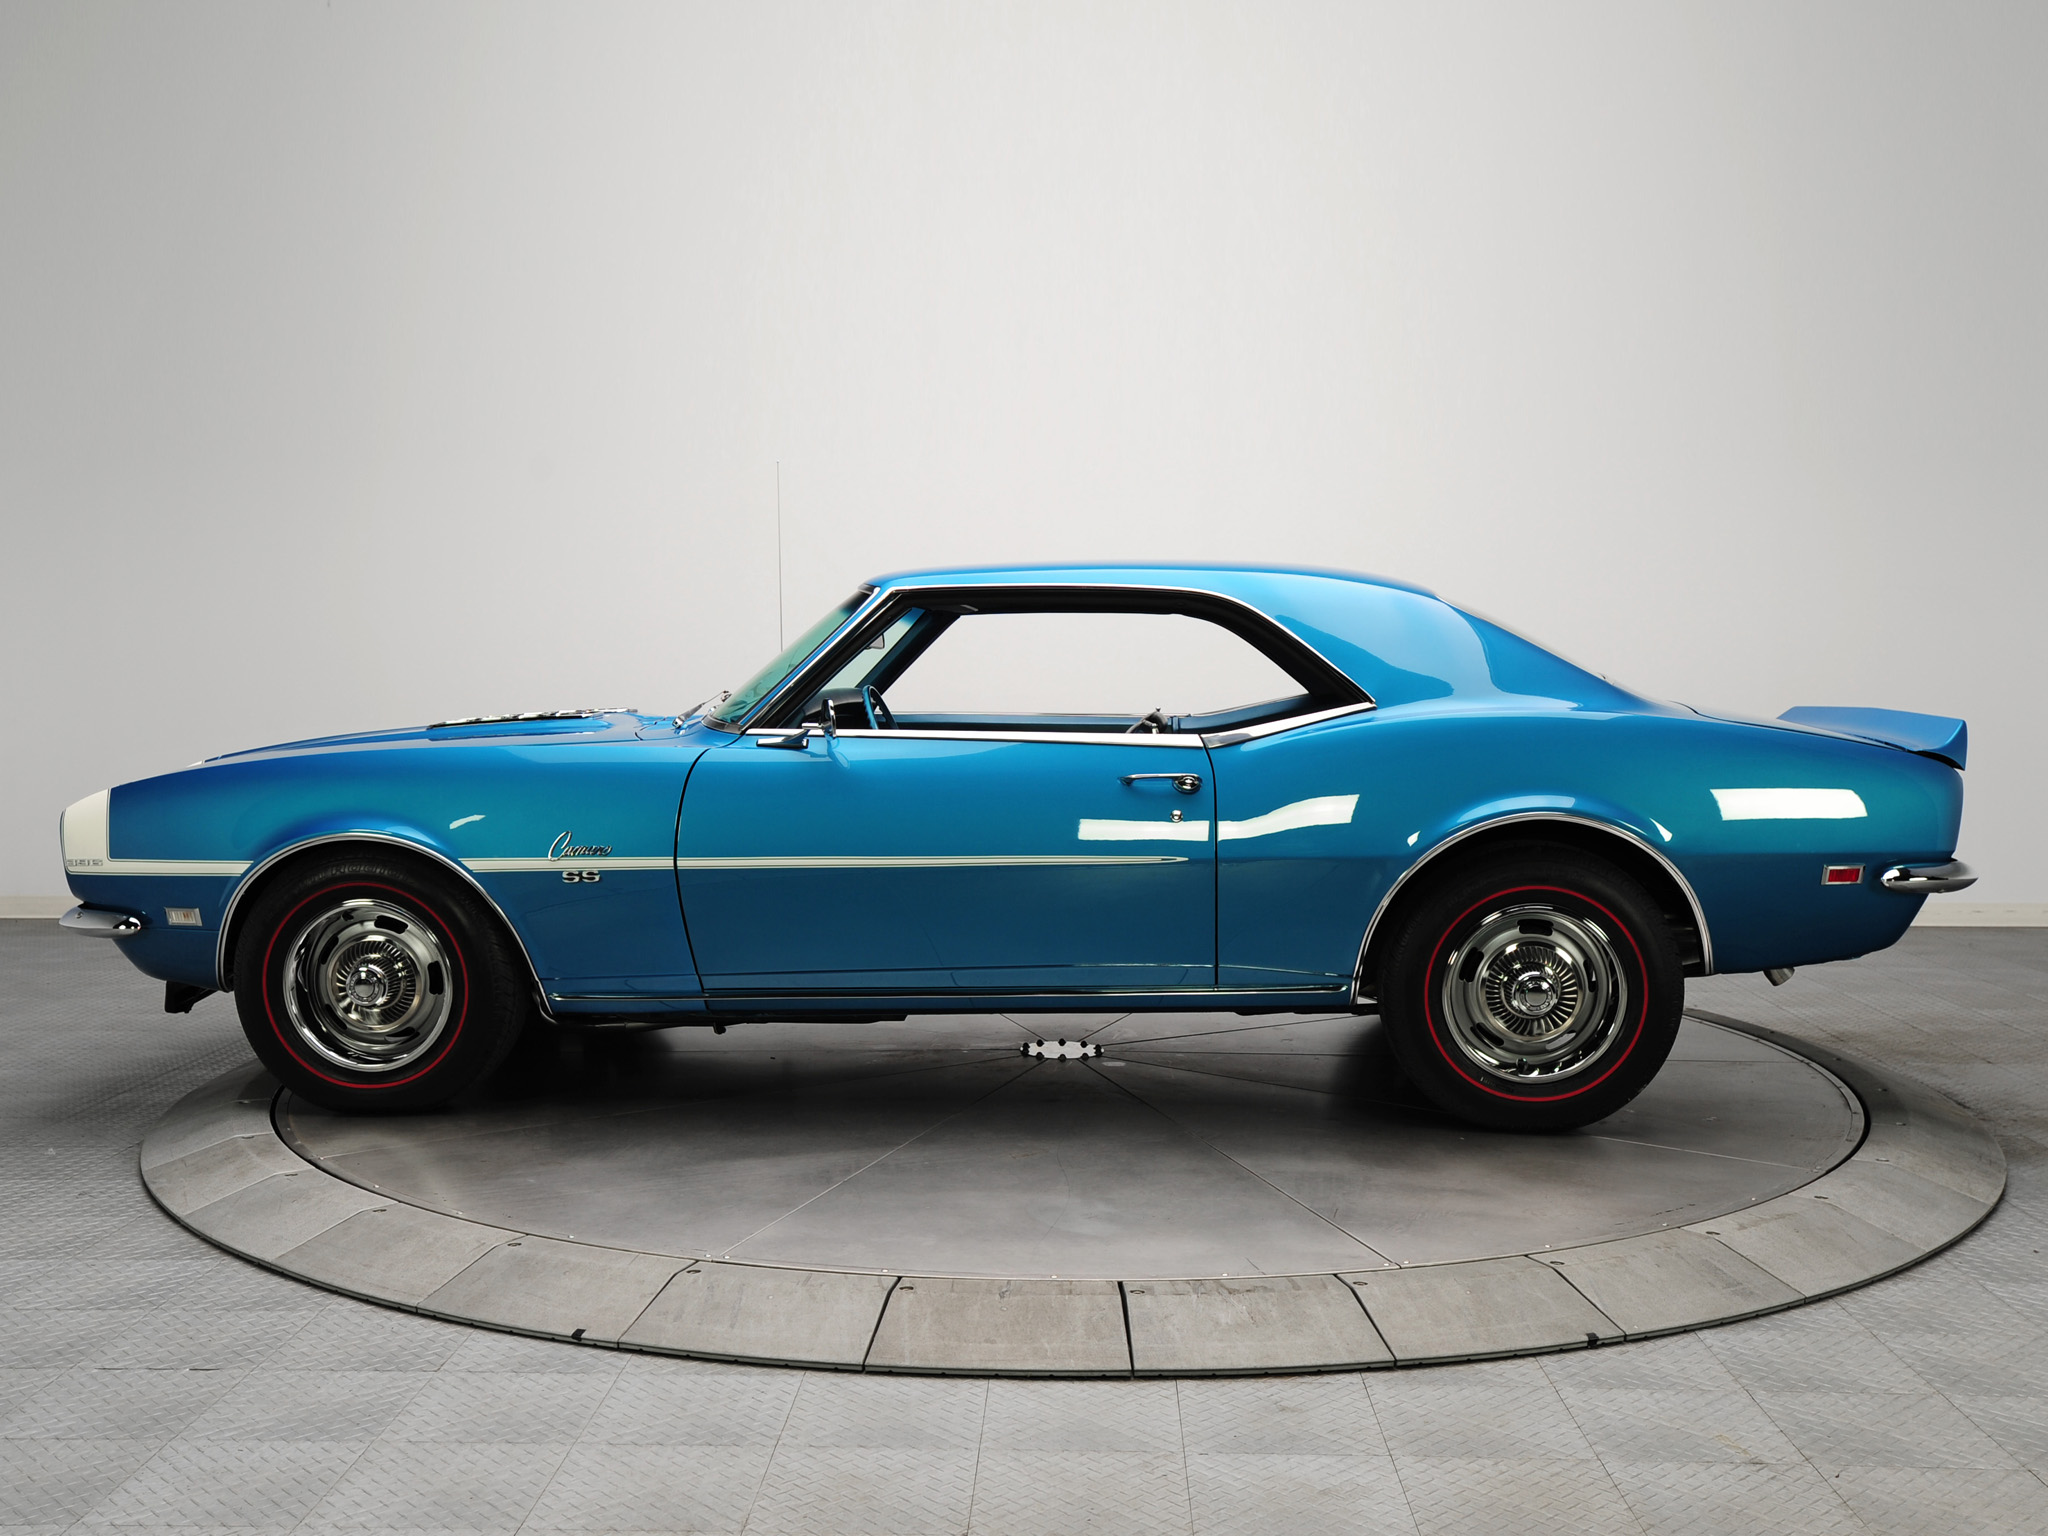 Chevrolet Wallpapers Chevrolet Camaro SS 396 1968 Wallpapers 2048x1536